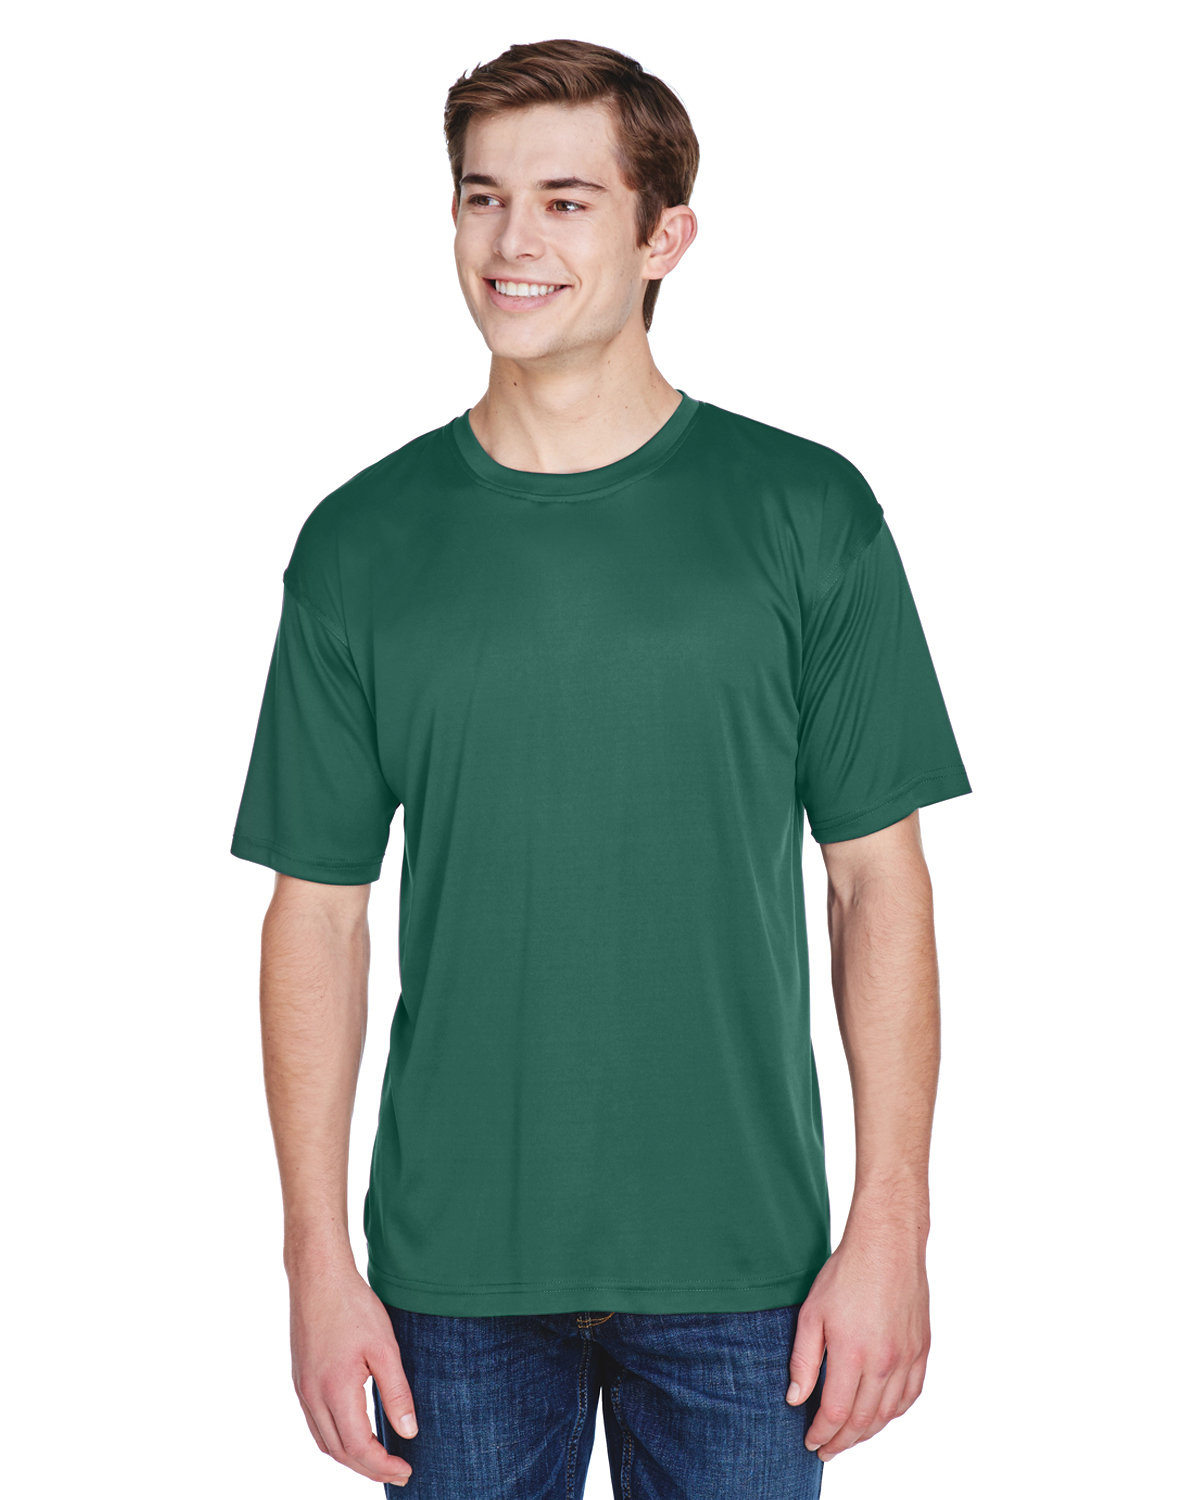 UltraClub Men's Cool & Dry Basic Performance T-Shirt FOREST GREEN